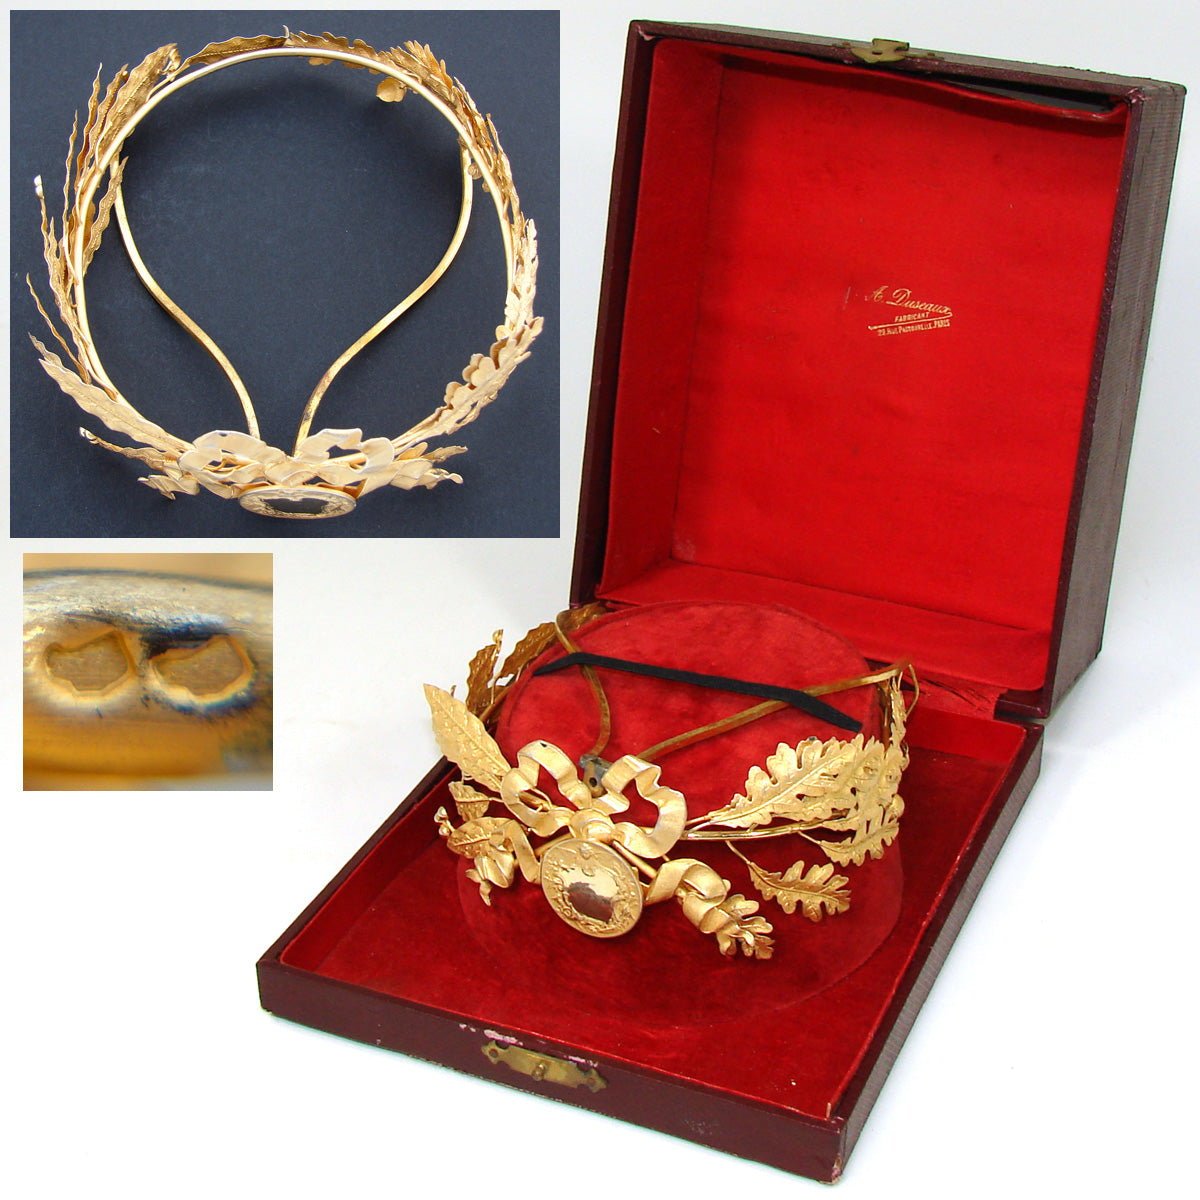 Antique French 18k Gold on Silver Vermeil Tiara, Crown or Diadem Award, Orig. Box